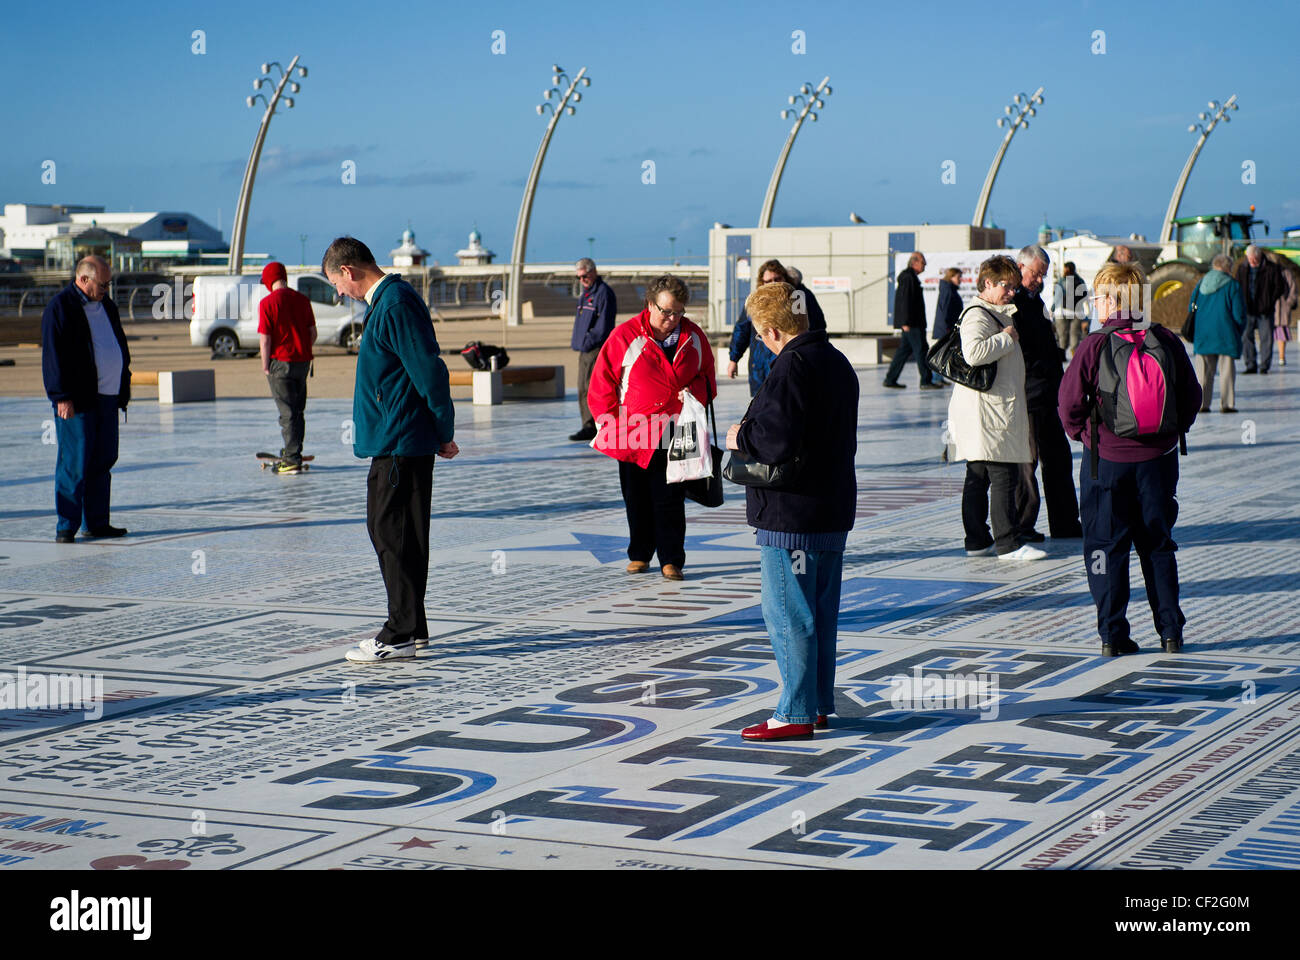 People standing on the Comedy carpet, one of the largest pieces of public art ever commissioned in the UK, on Blackpool Stock Photo